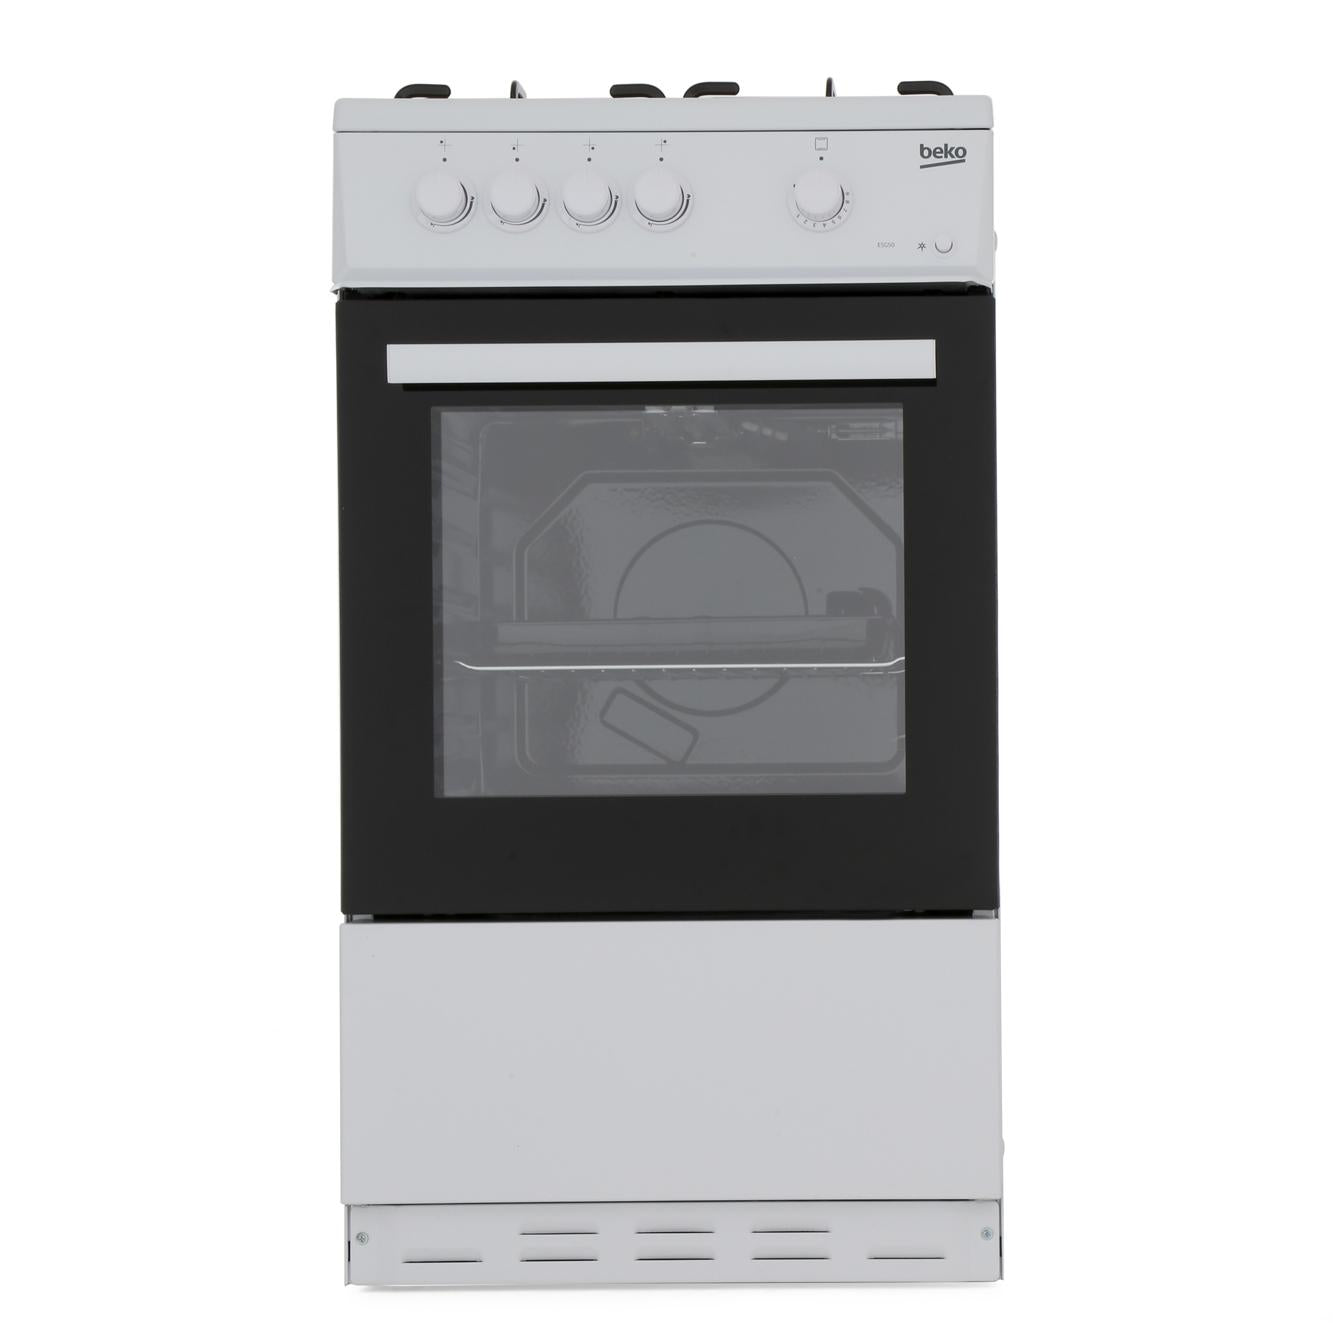 Beko ESG50W 50cm Single Oven Gas Cooker - Appliance Village